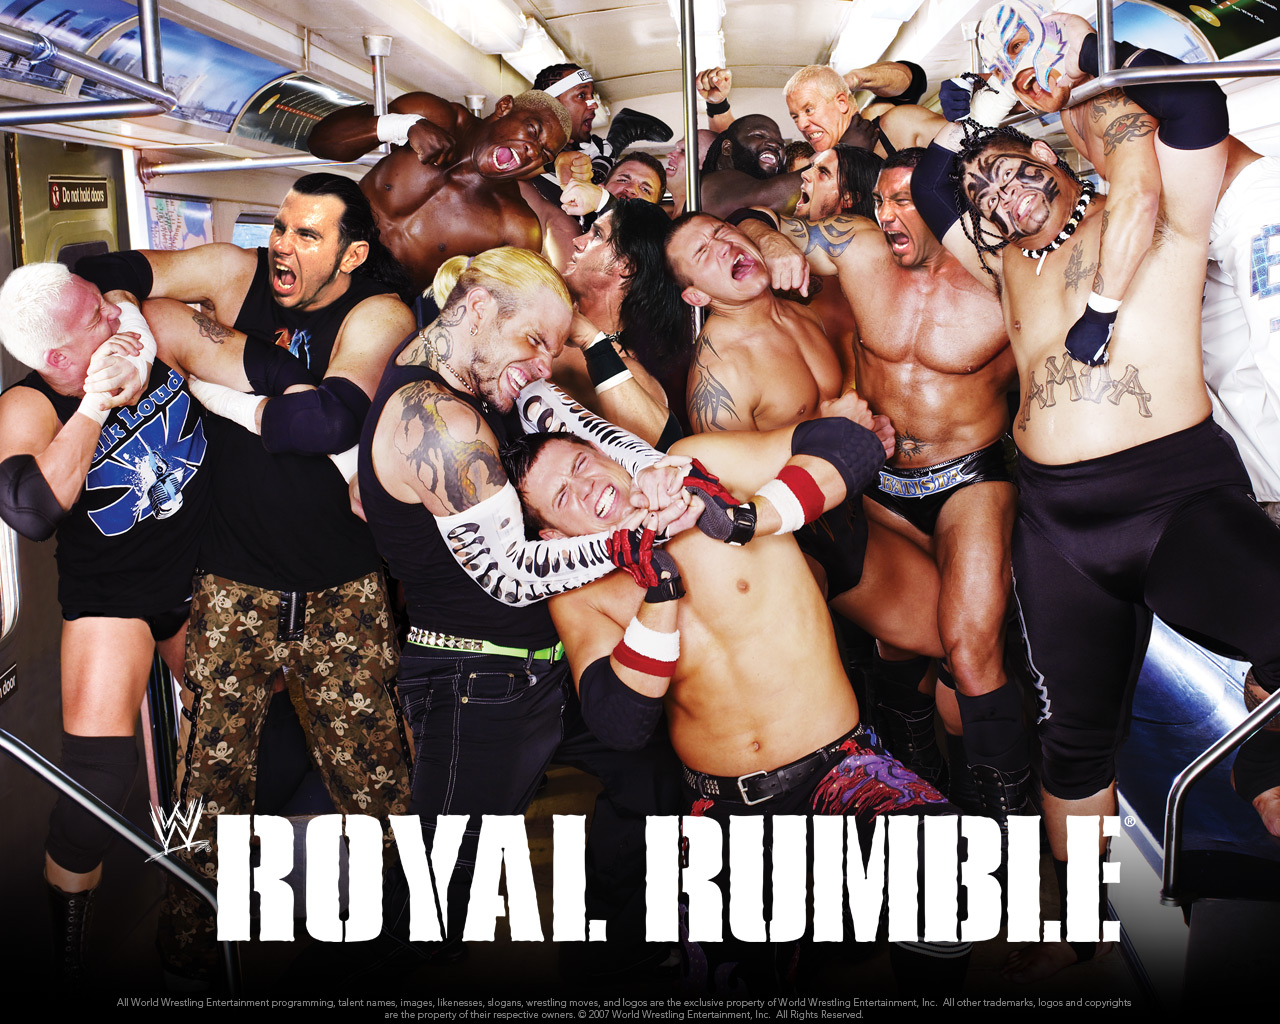 royal rumble sportsroids Royal Rumble 2009 is Upon Us: But Who Will Win?